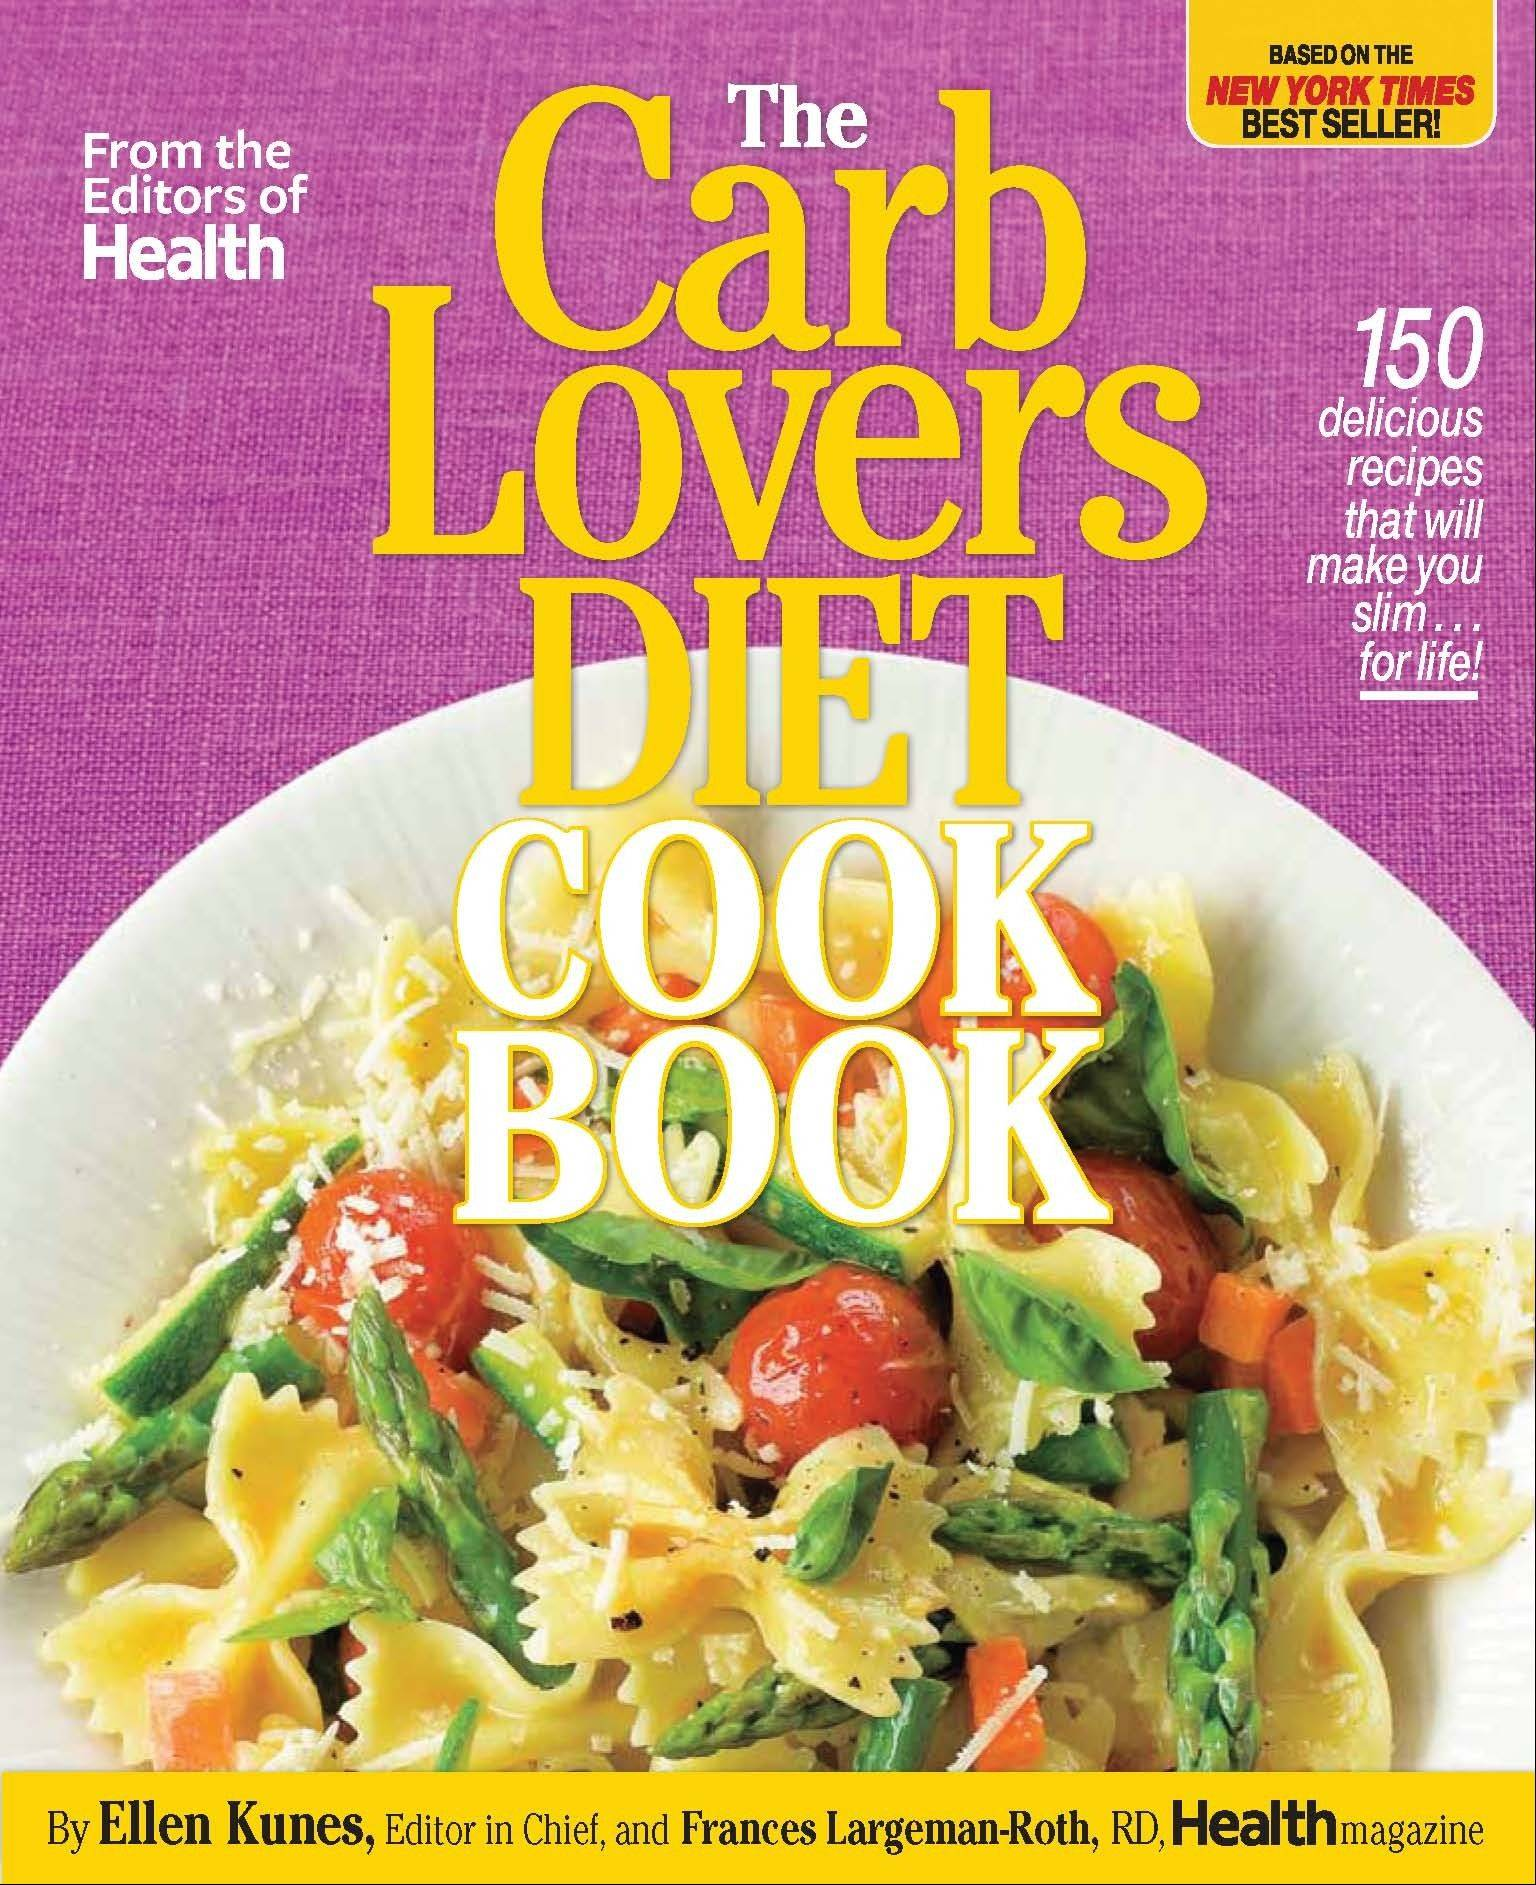 Weight-loss cookbook for carb lovers